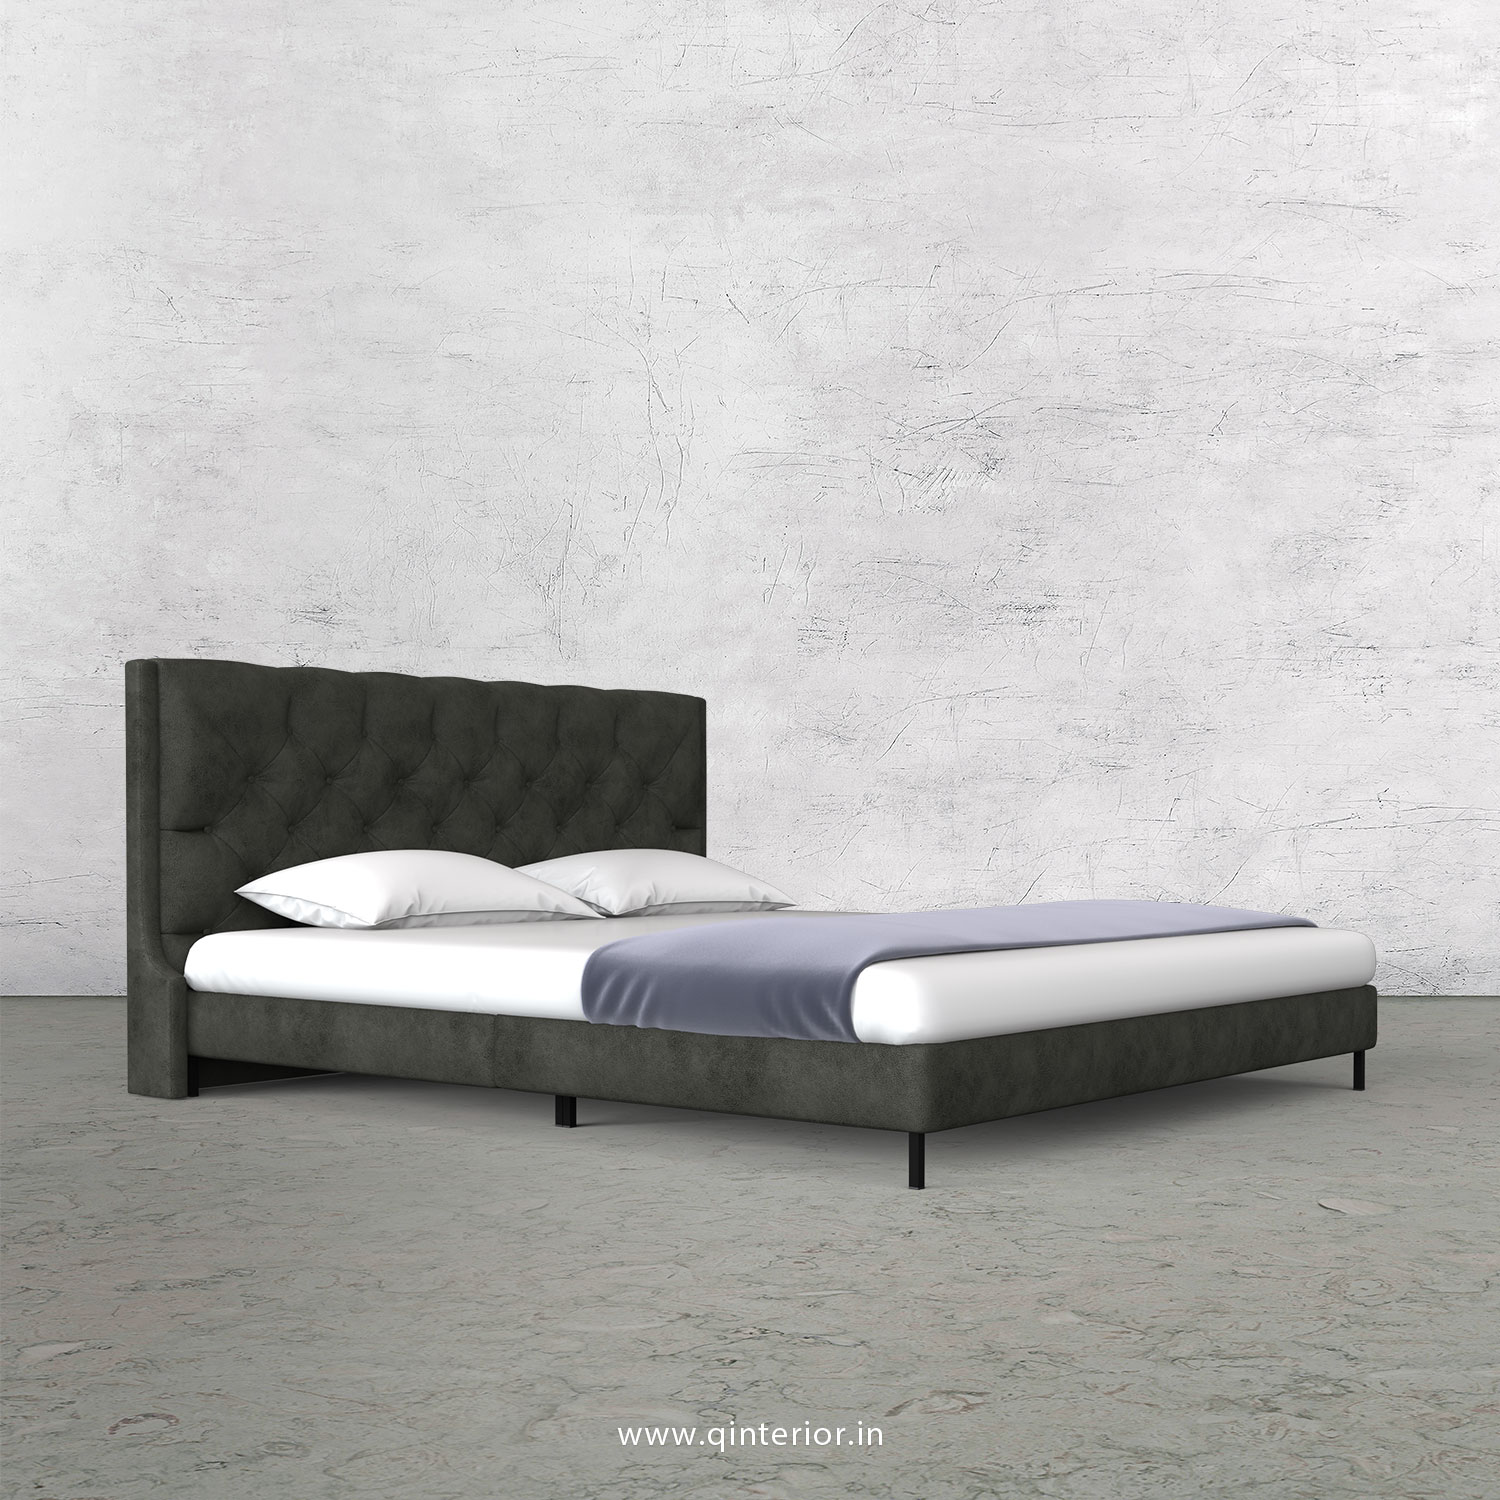 Scorpius King Size Bed in Fab Leather Fabric - KBD003 FL07